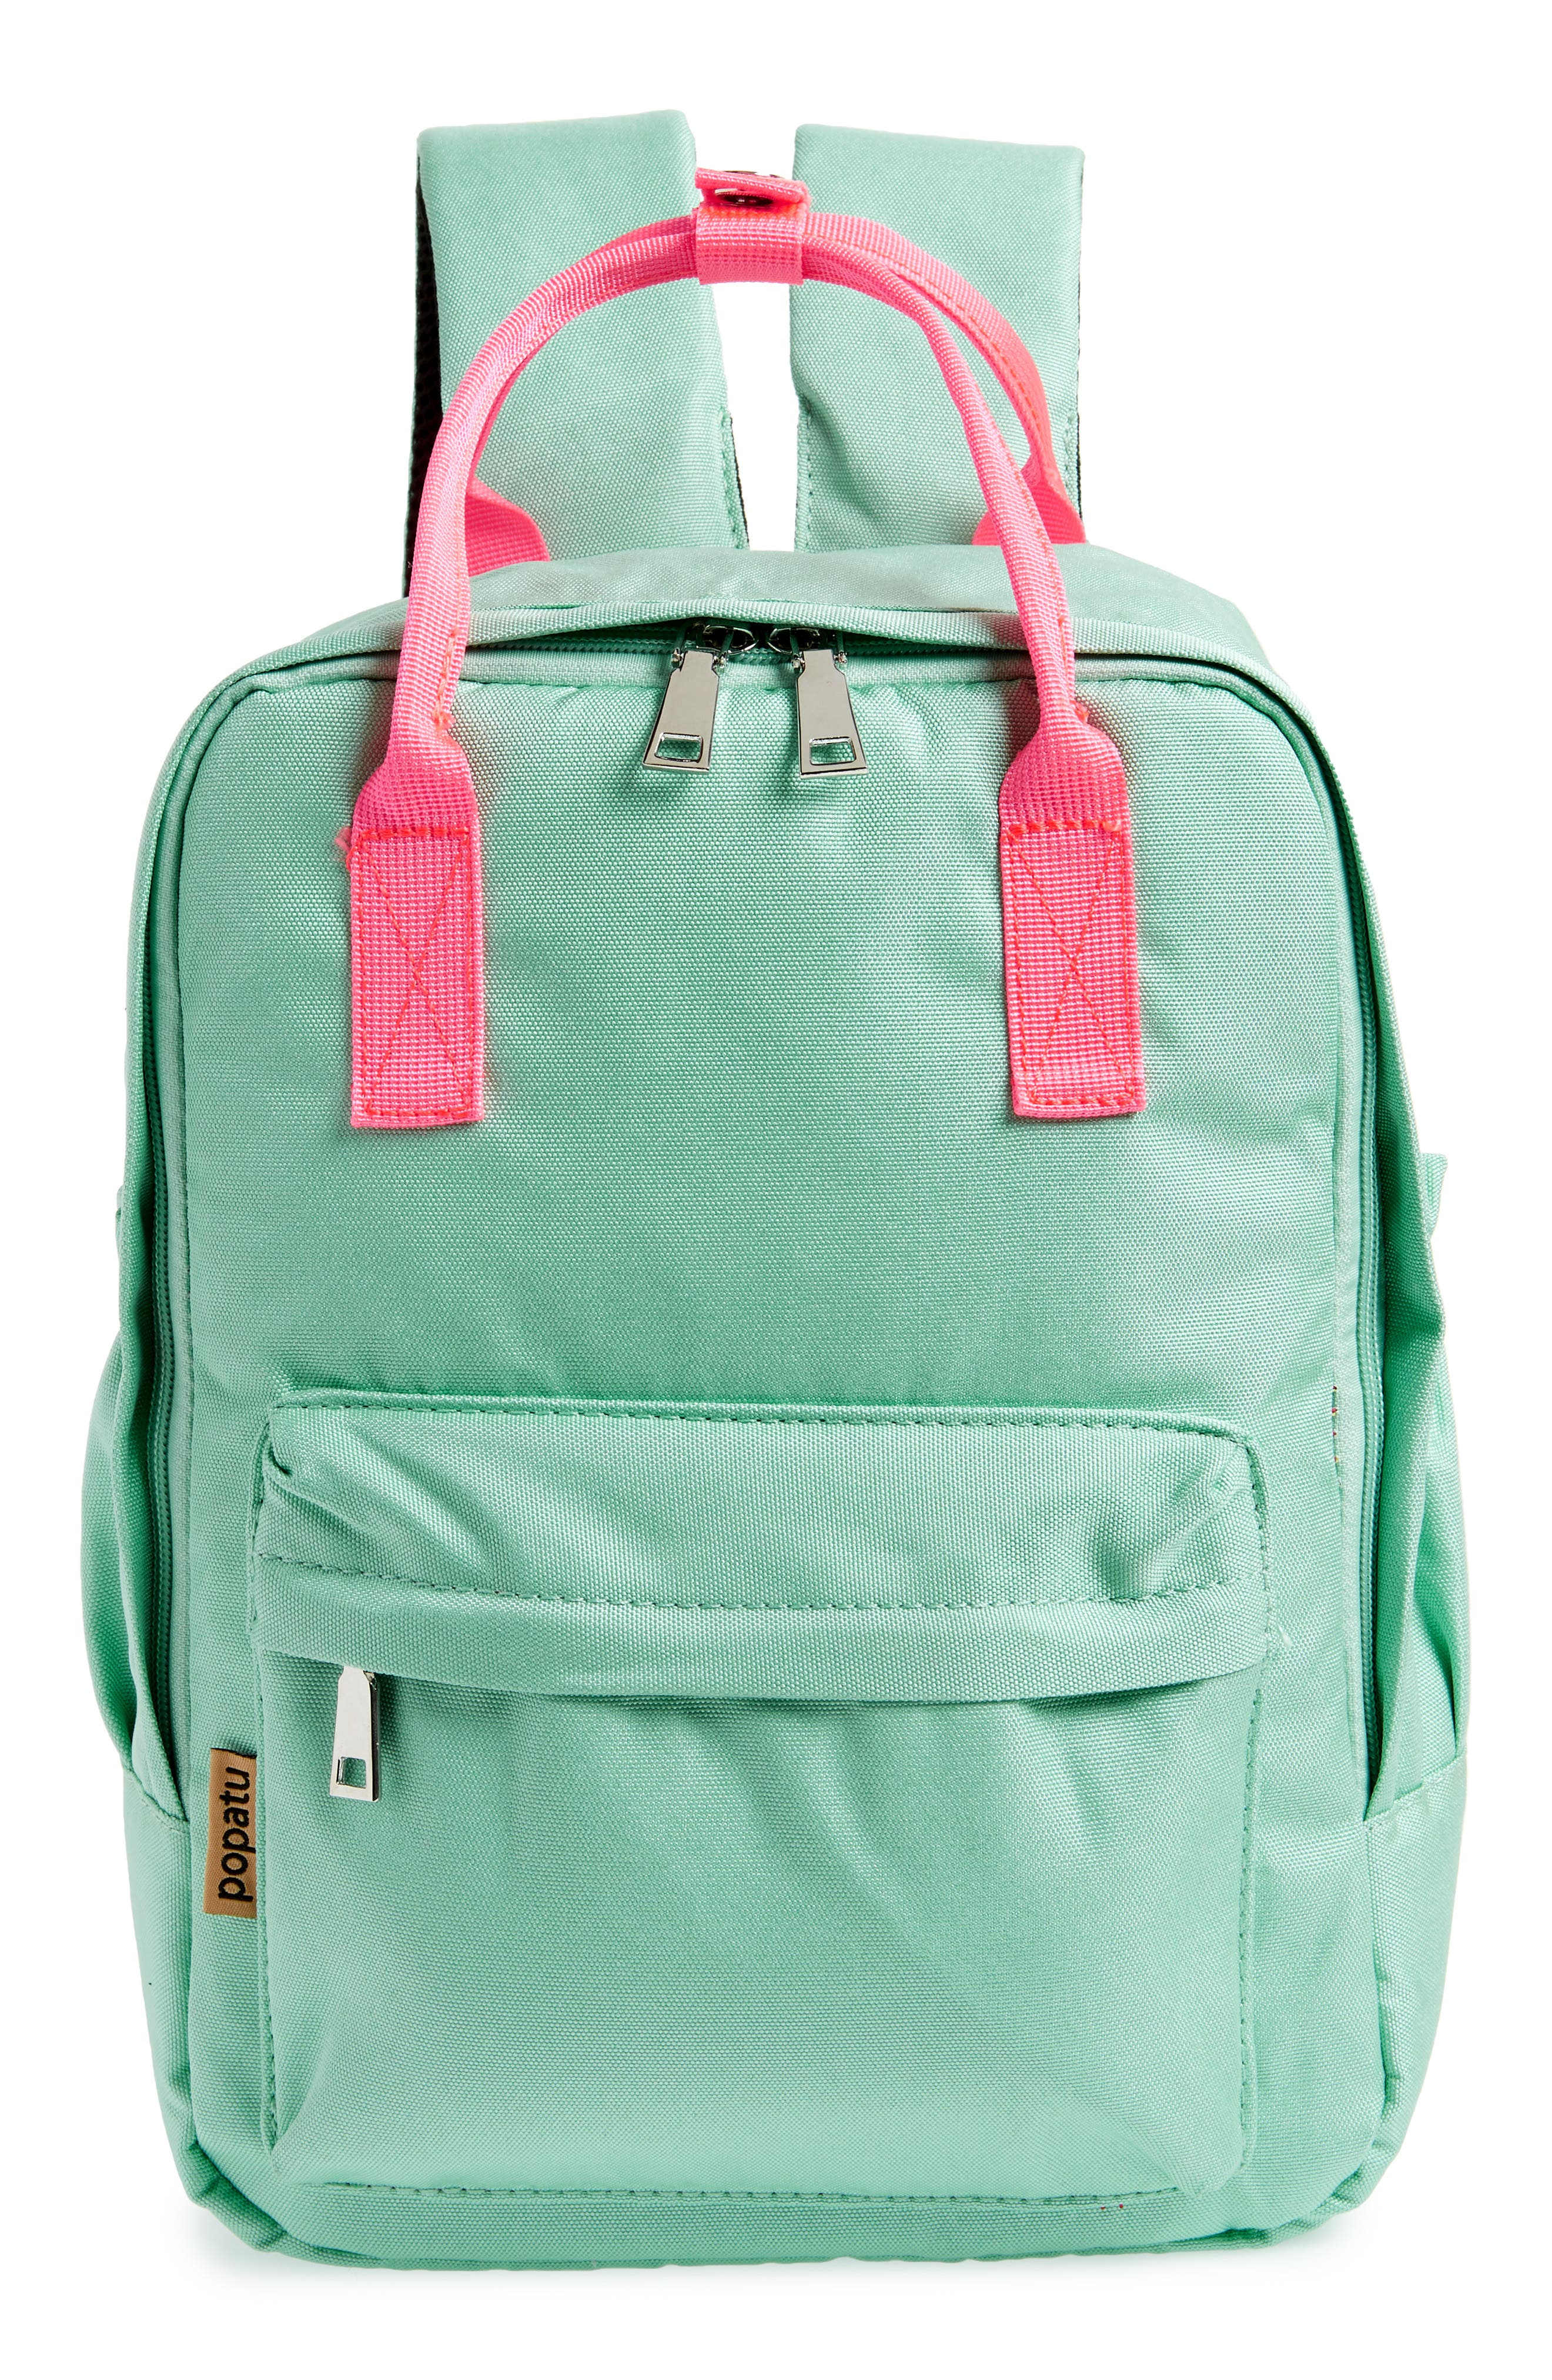 Solid Backpack,                             Main thumbnail 1, color,                             440